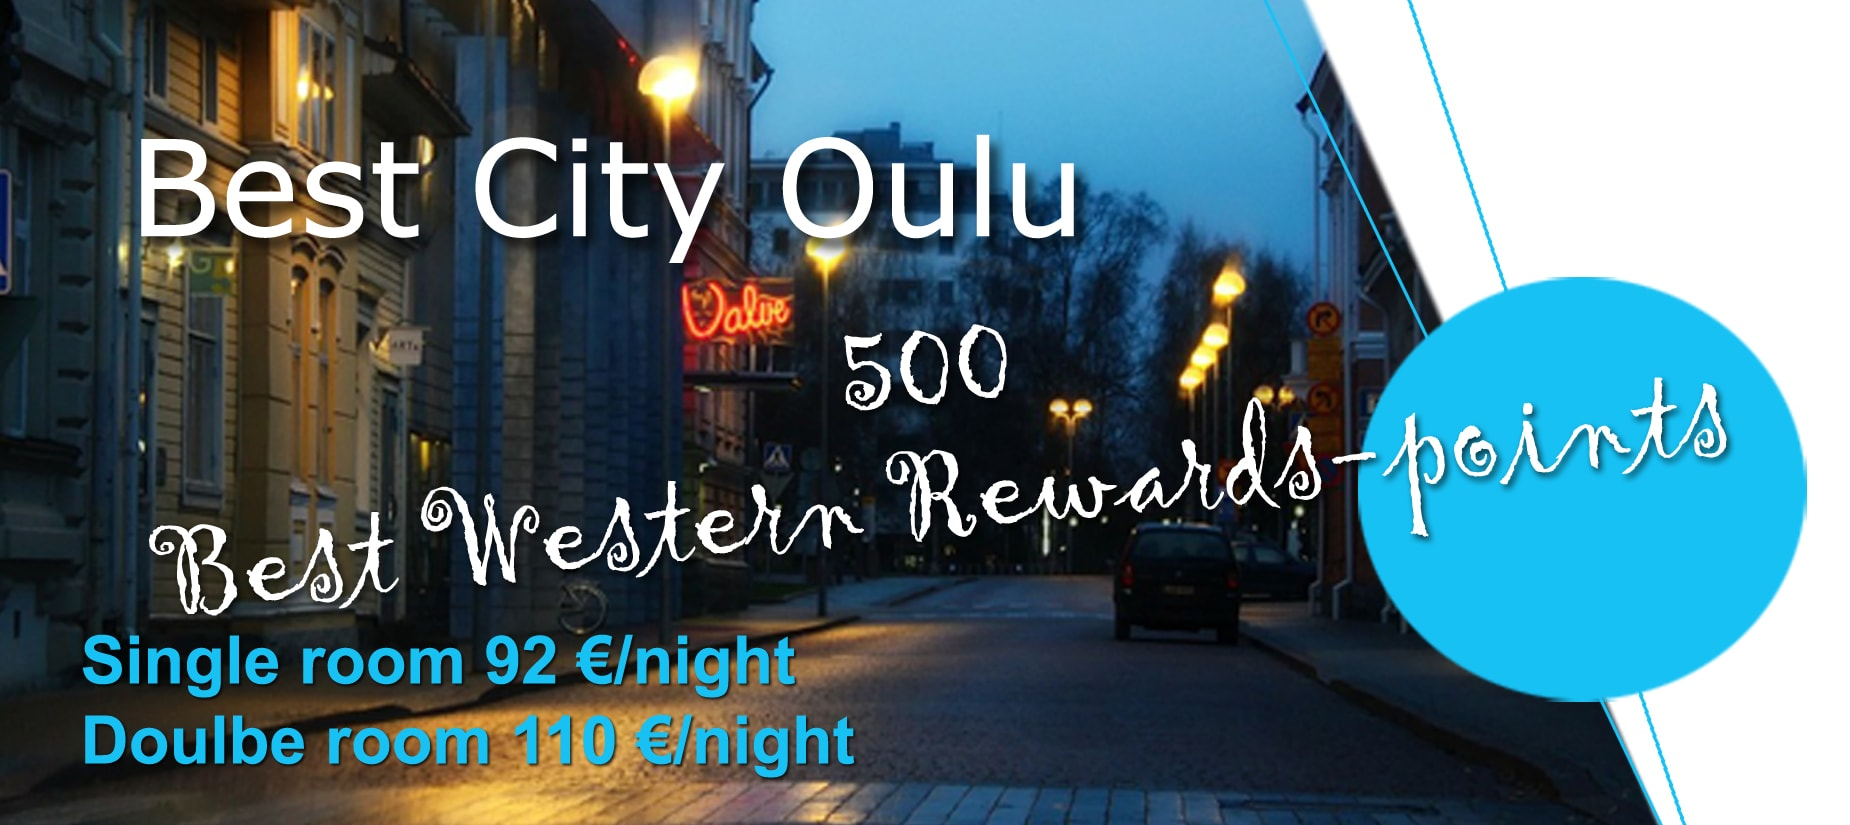 Best City Oulu en